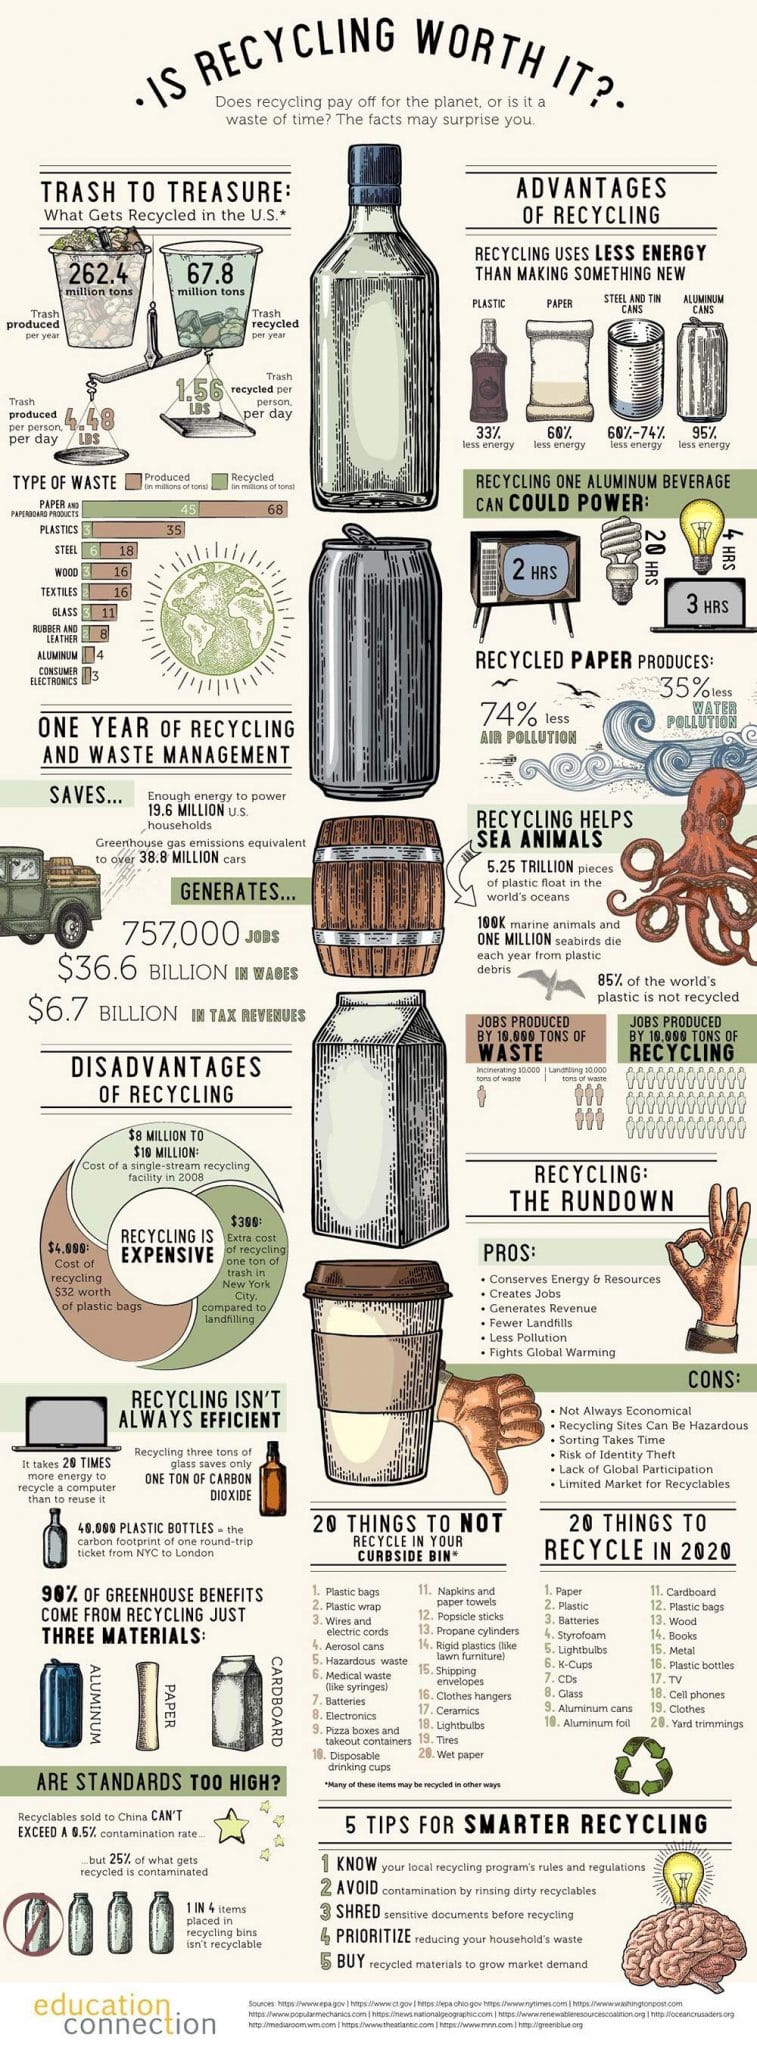 Do These Facts Suggest Recycling is a Waste of Time?